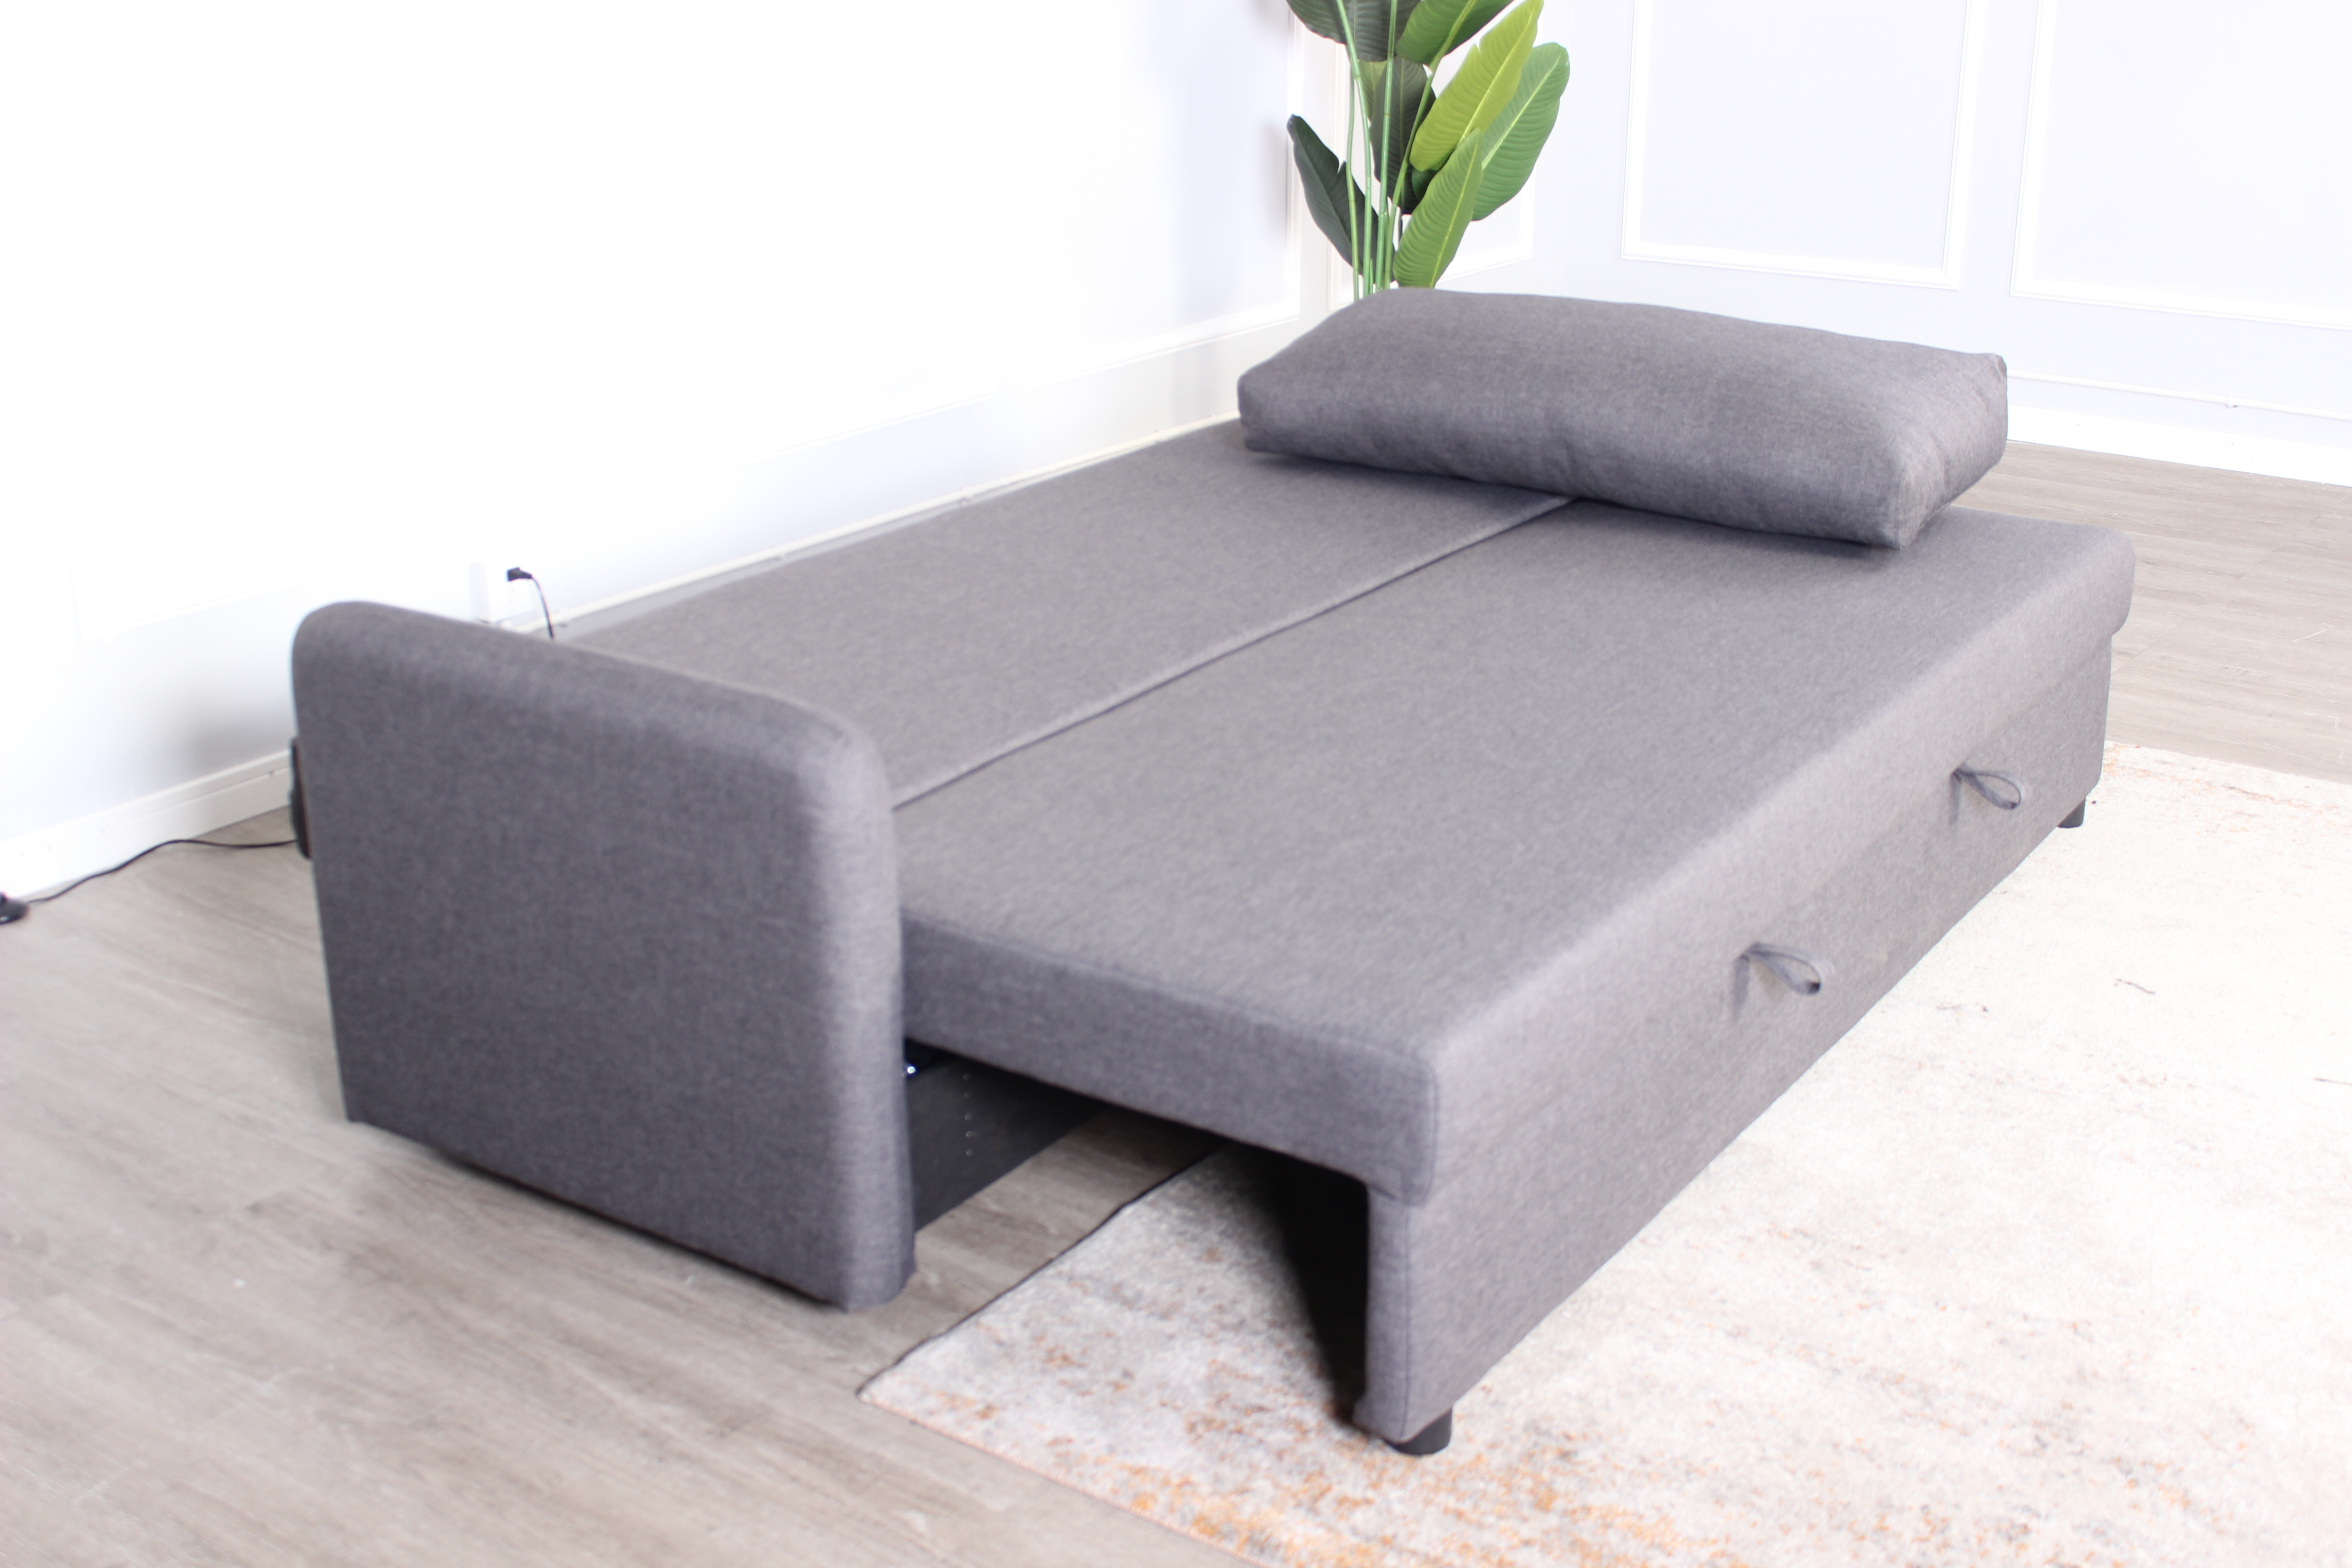 3S STELLA sofa bed, gray polyester fabric, natural wooden legs in bed form